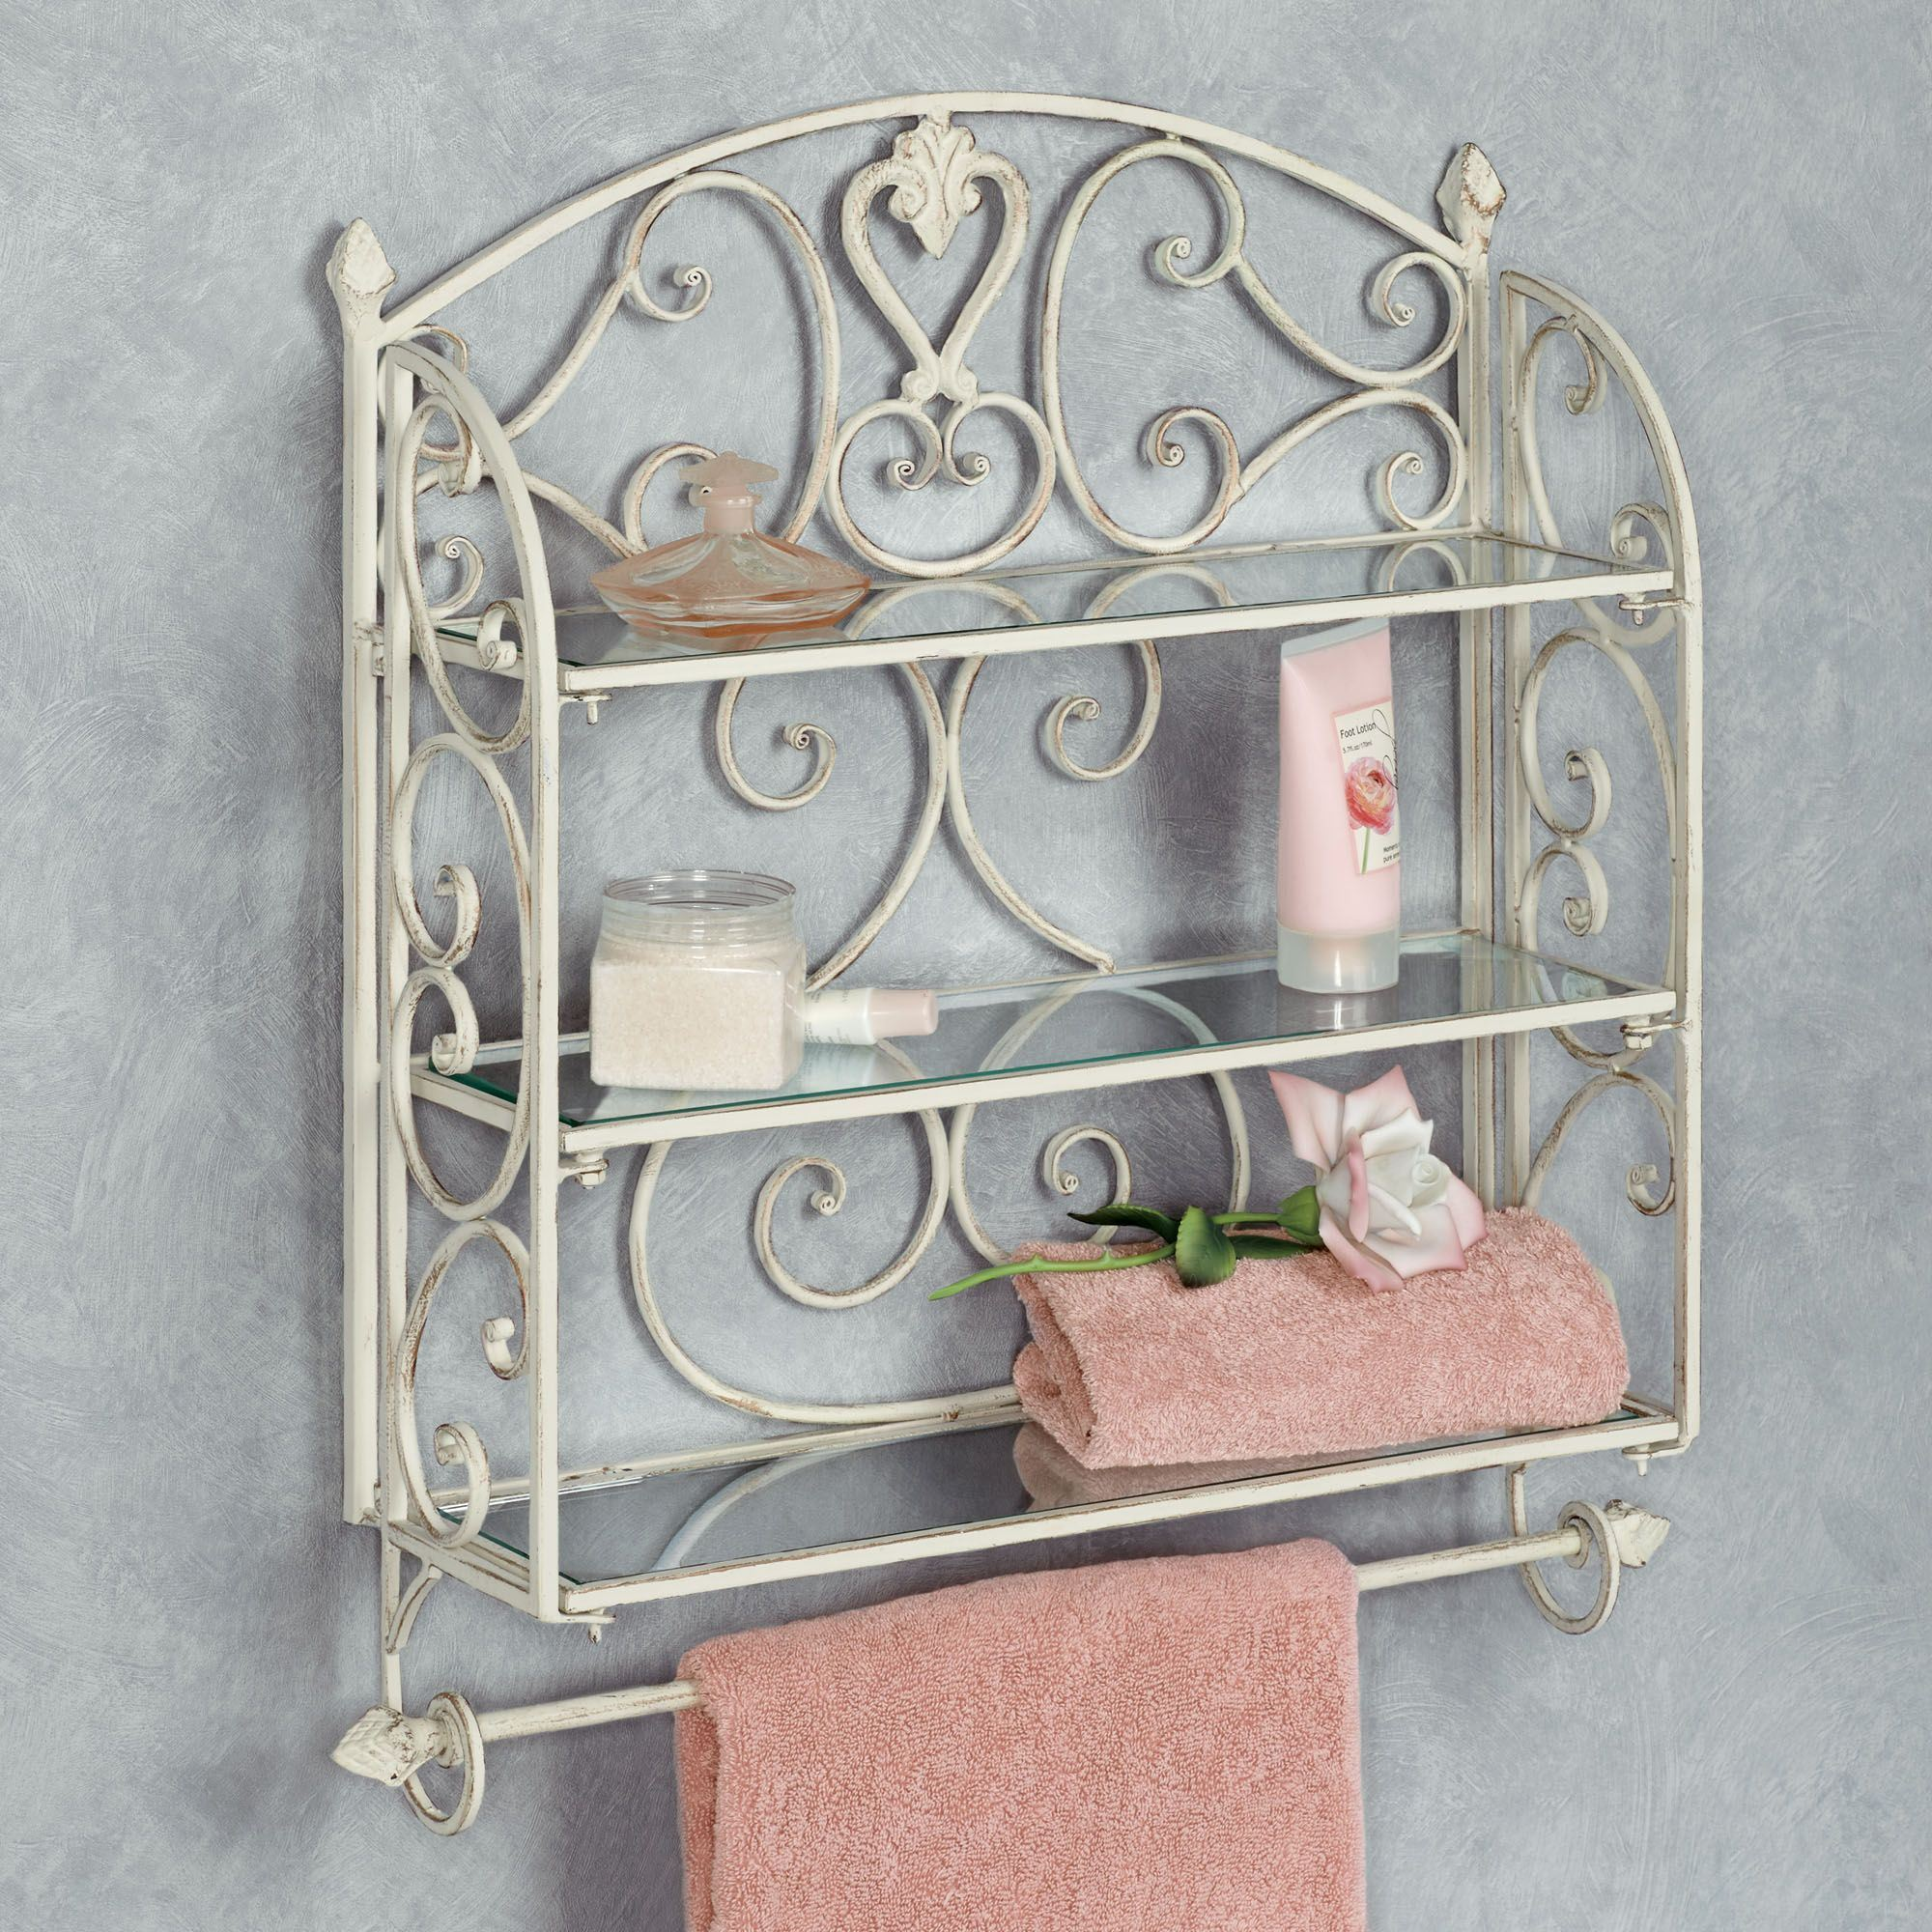 Astounding Bathroom Wall Towel Rack Of Traditional Patterns For Elegant Bined